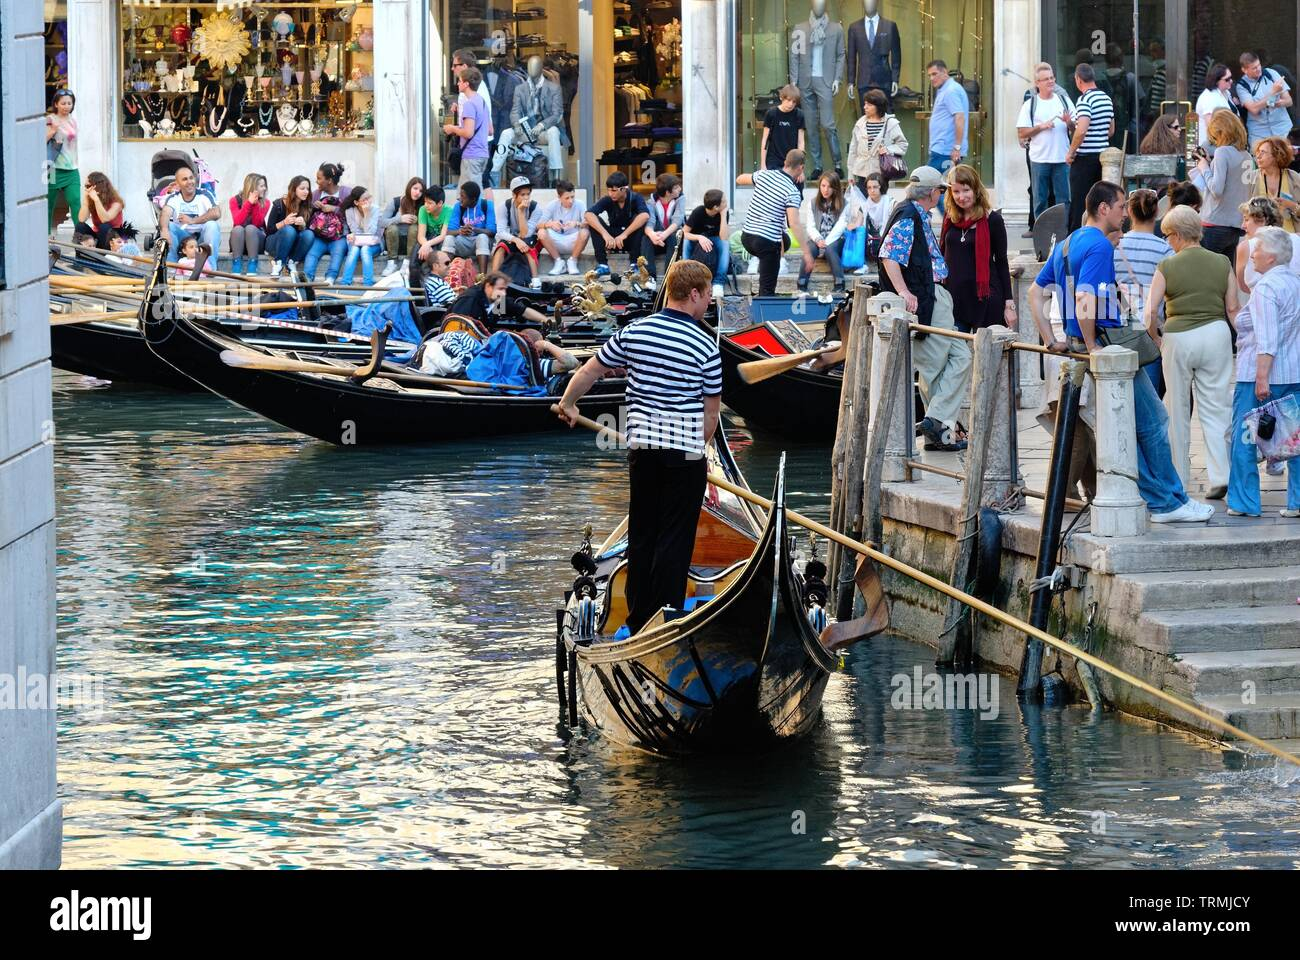 The Bacino Orseolo with crowded tourists and gondolas, Venice Italy Europe EU - Stock Image